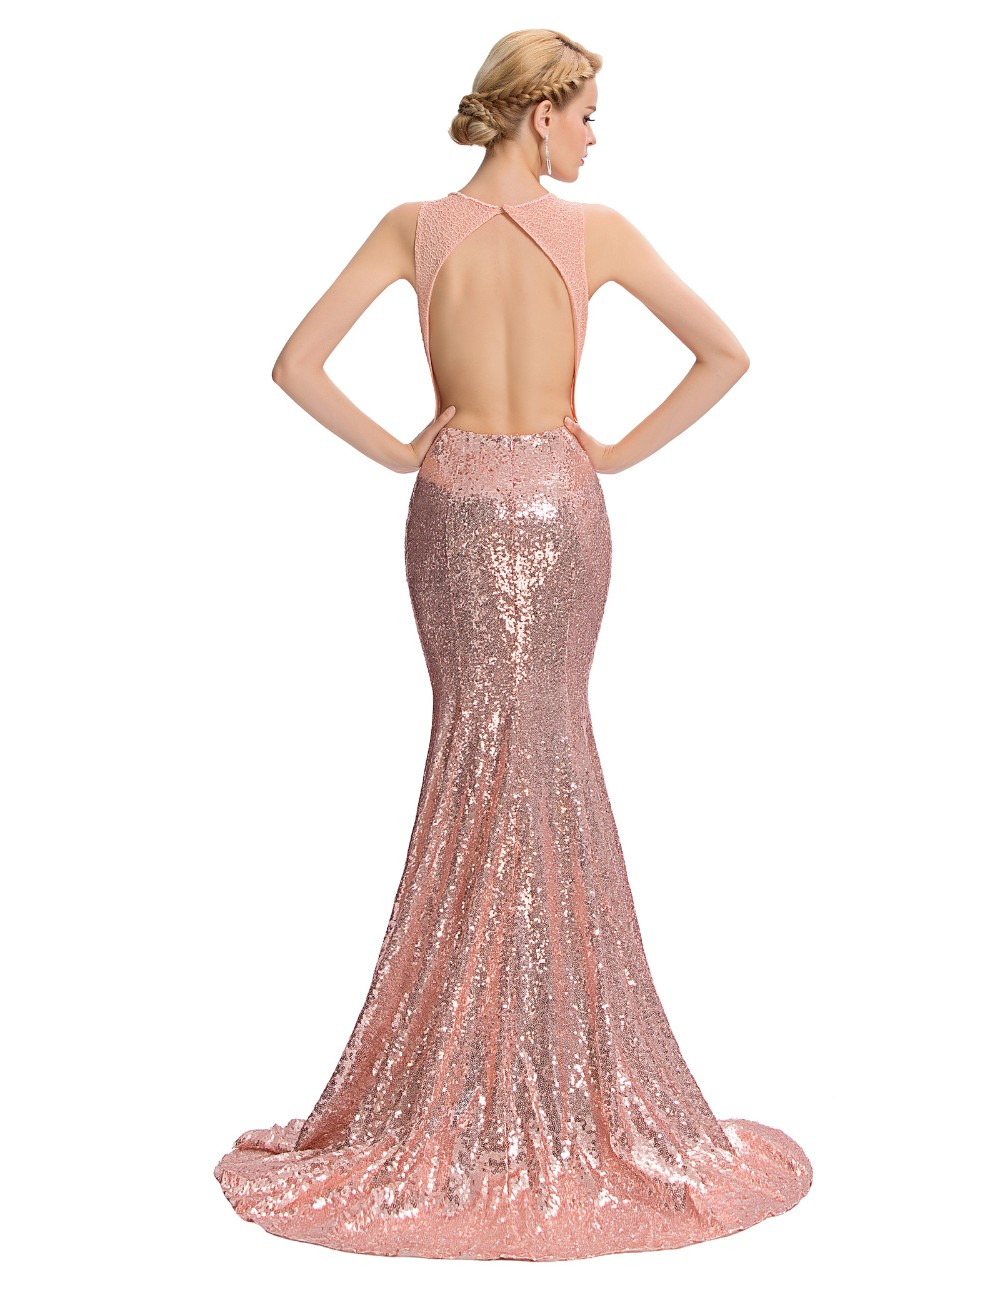 Elegant Pink Sequin Floor Length Backless Lace Mermaid Evening Dress 4